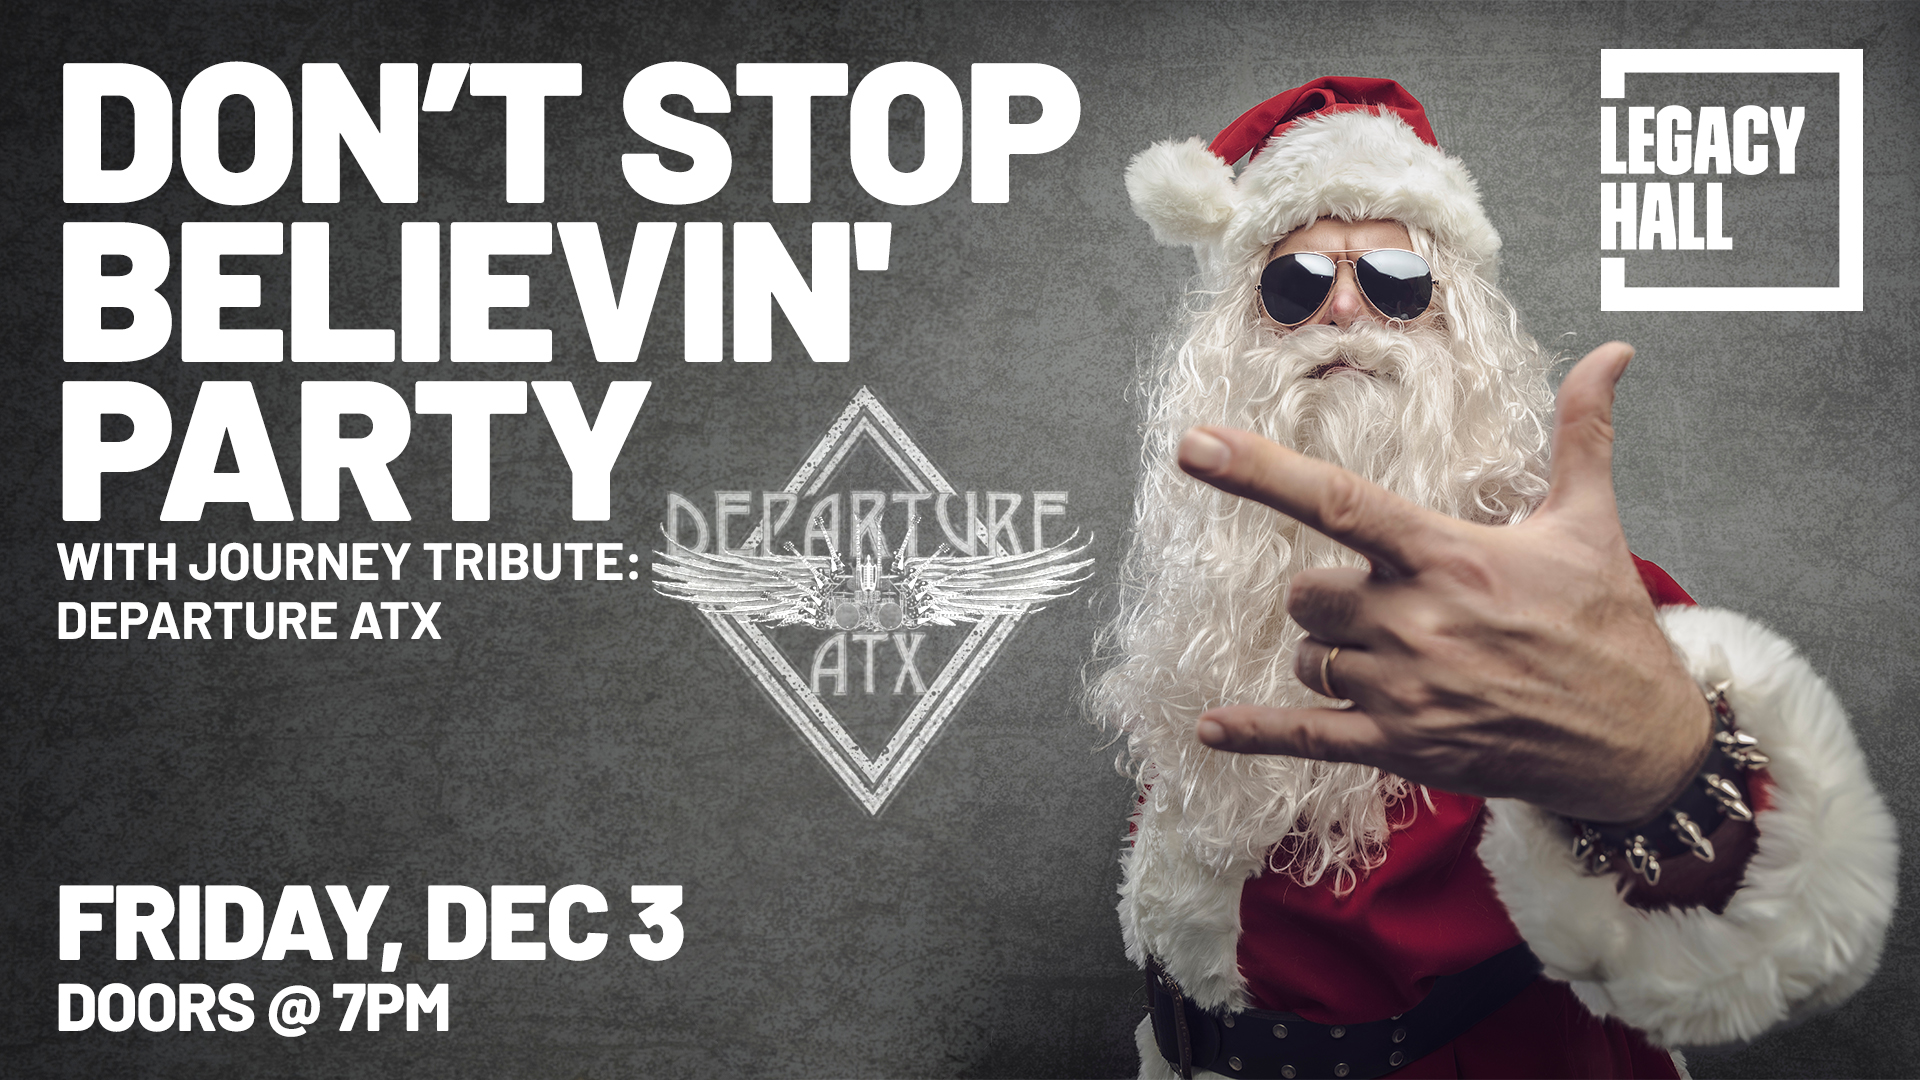 Promo image of Don't Stop Believin' Party with Departure ATX